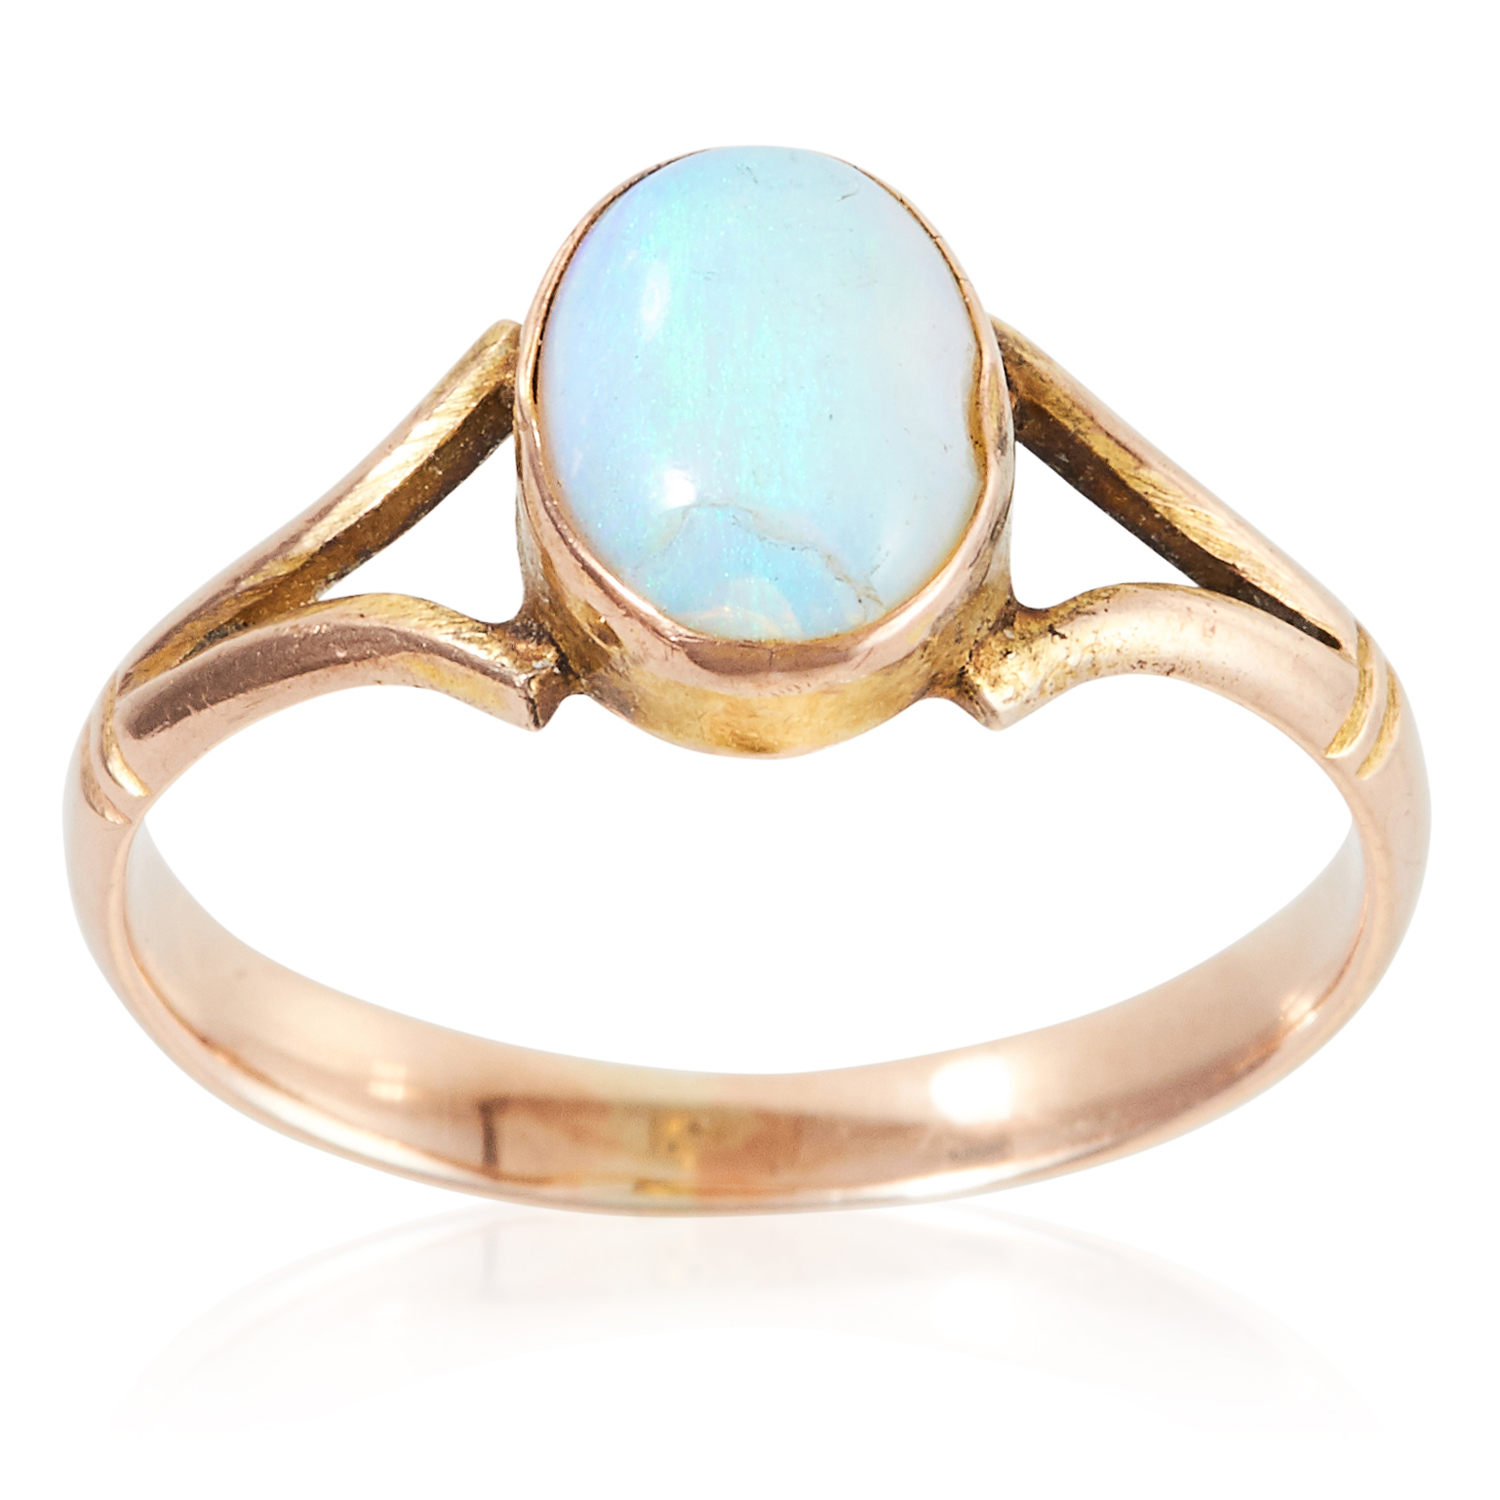 AN OPAL DRESS RING in yellow gold, set with an oval cabochon opal to a bifurcated band, unmarked,